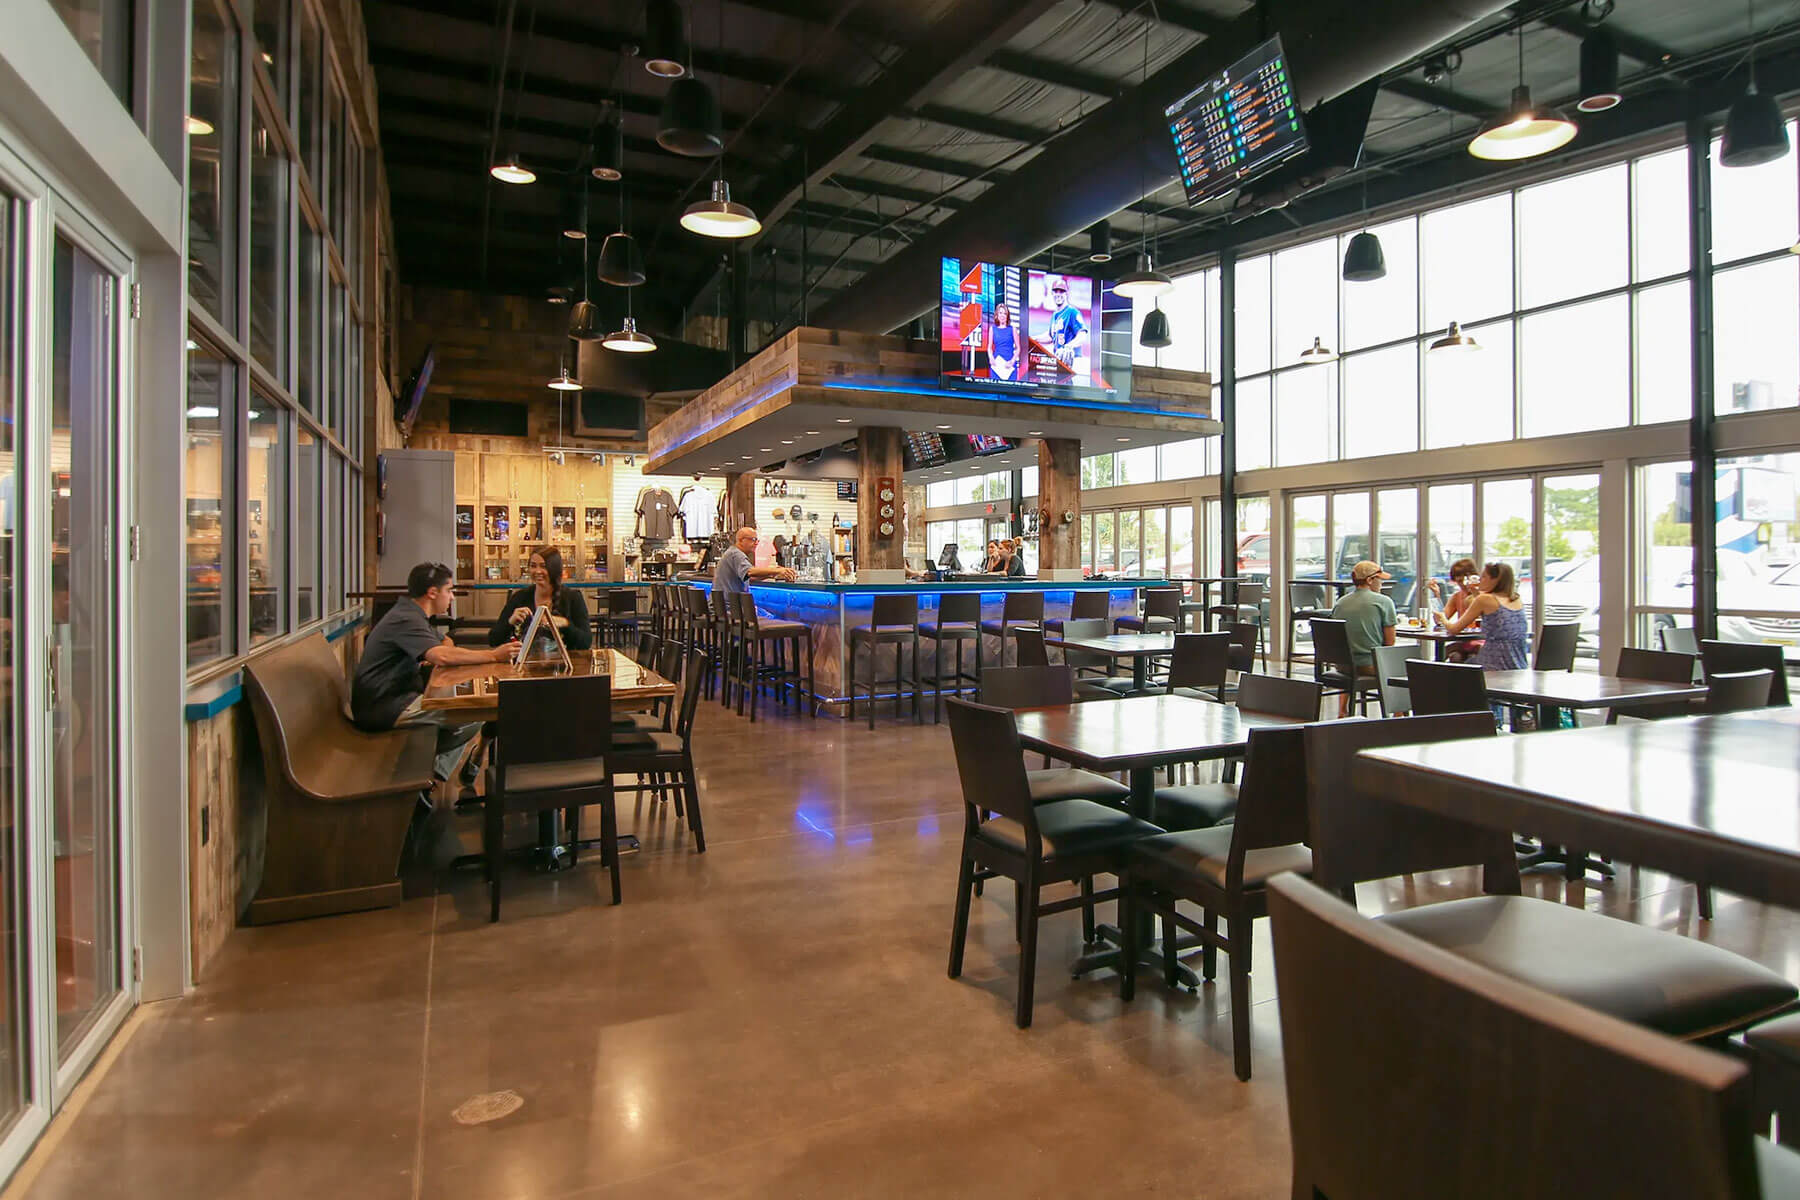 Inside the Big Storm Brewing Co. taproom in Clearwater, Florida